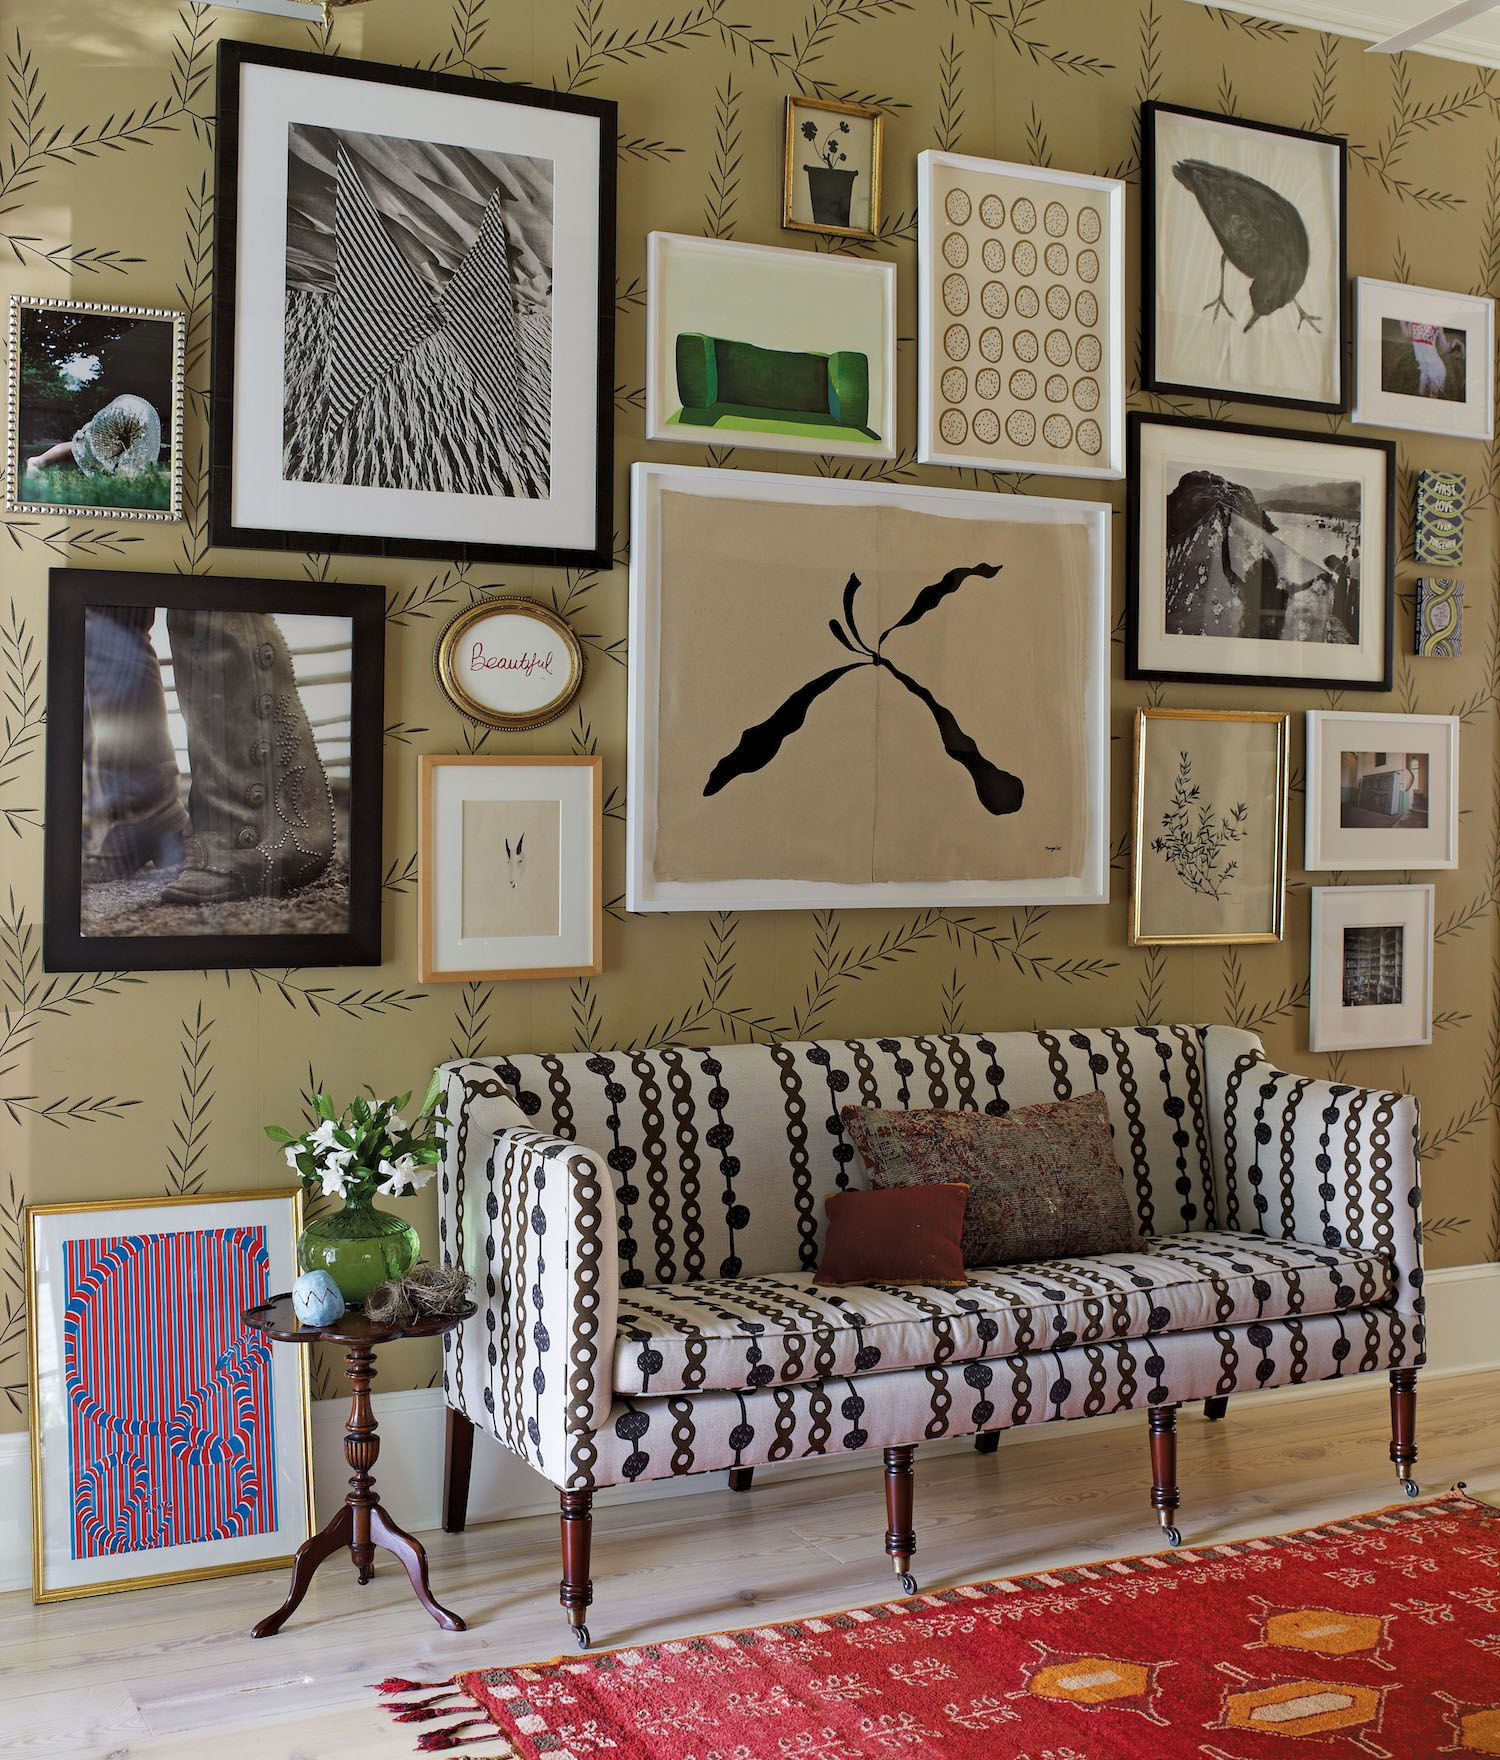 Christiane Lemieuxs New Book The Finer Things Rue